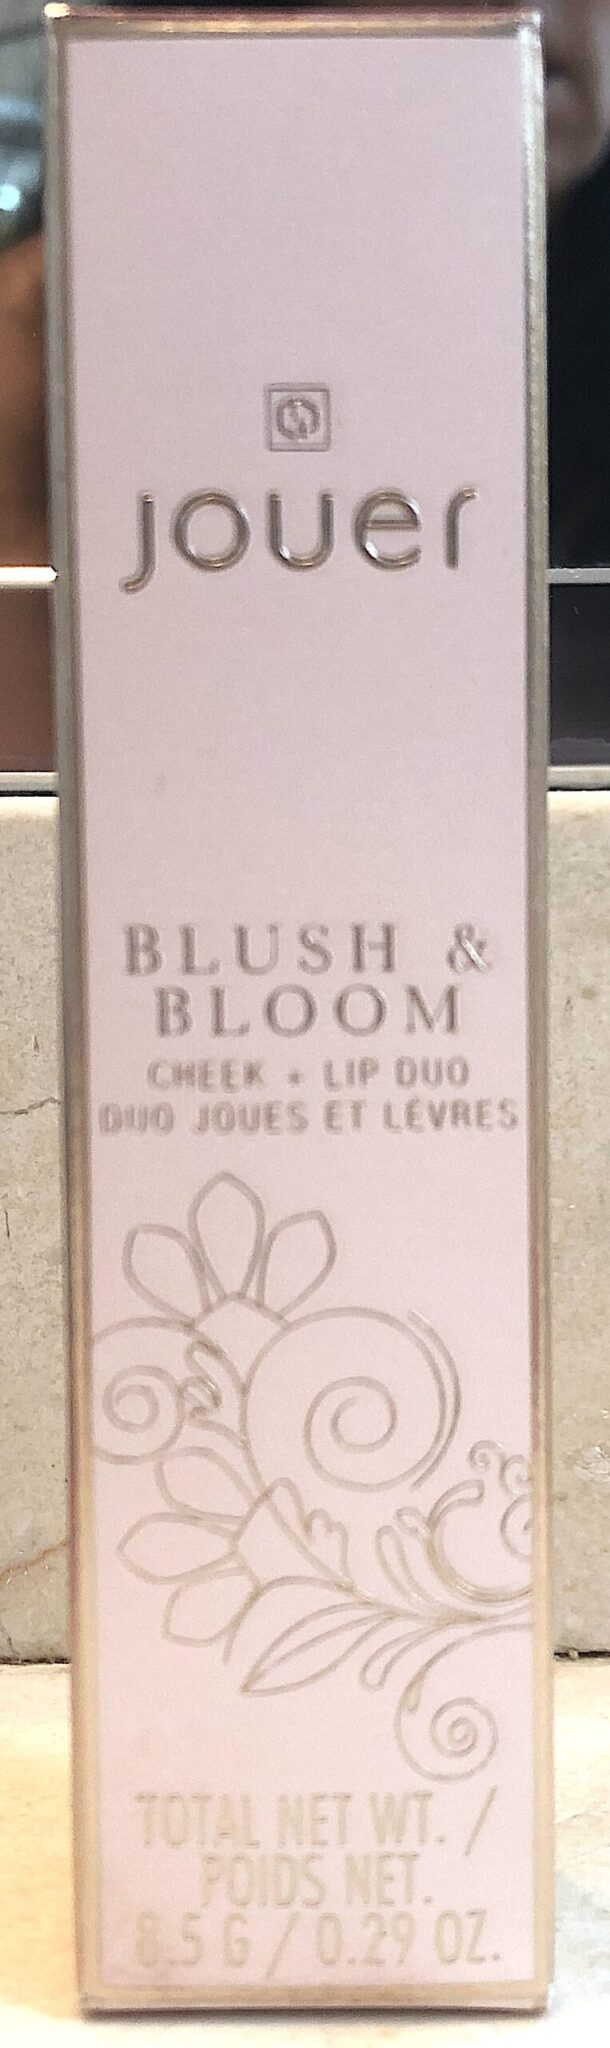 JOUER BLOOM & BLUSH CHEEK & LIP DUO OUTER BOX